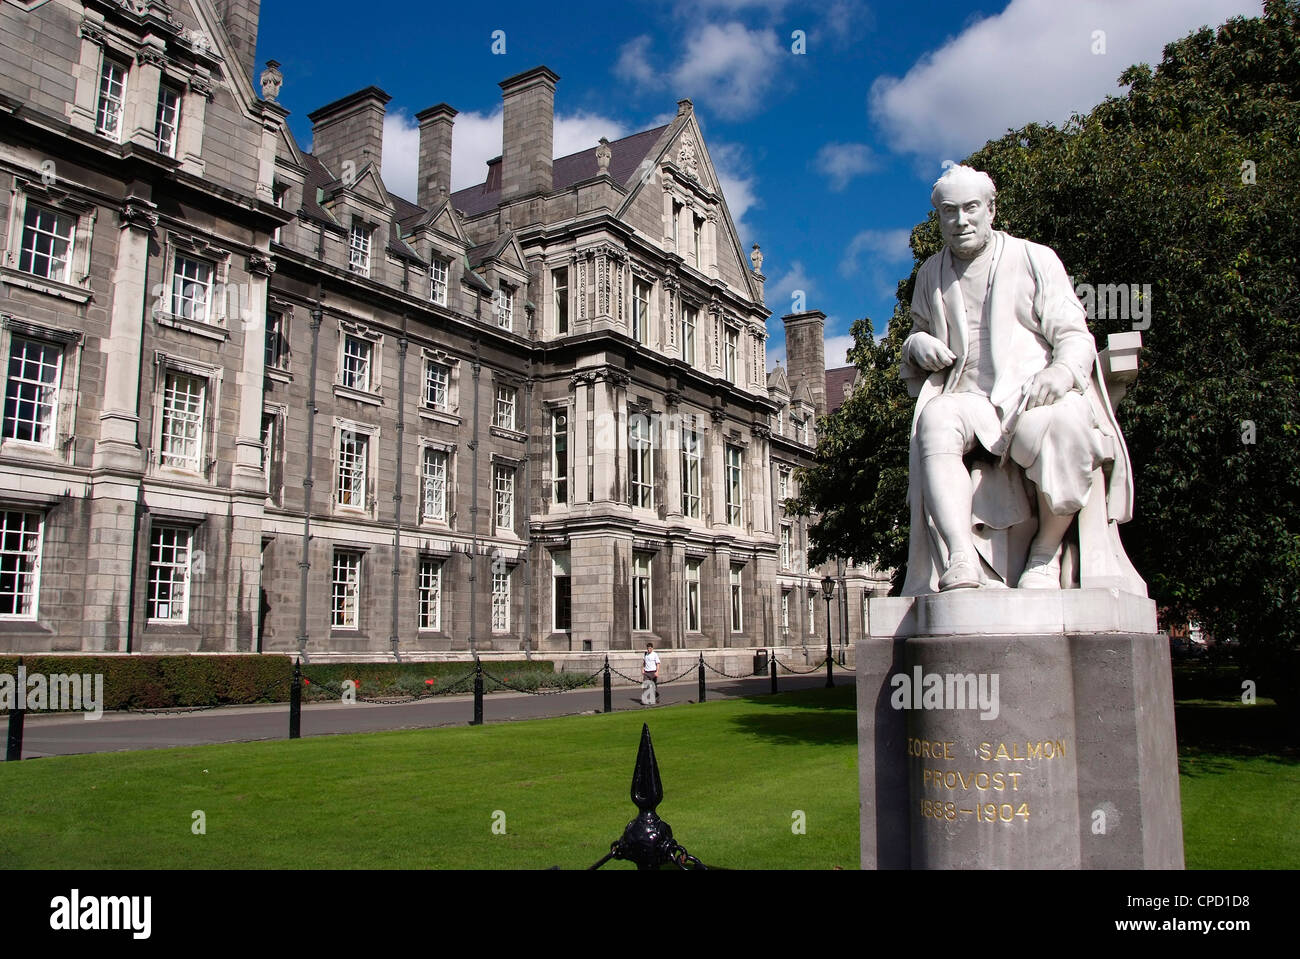 University Trinity College, Dublin, Republic of Ireland, Europe - Stock Image